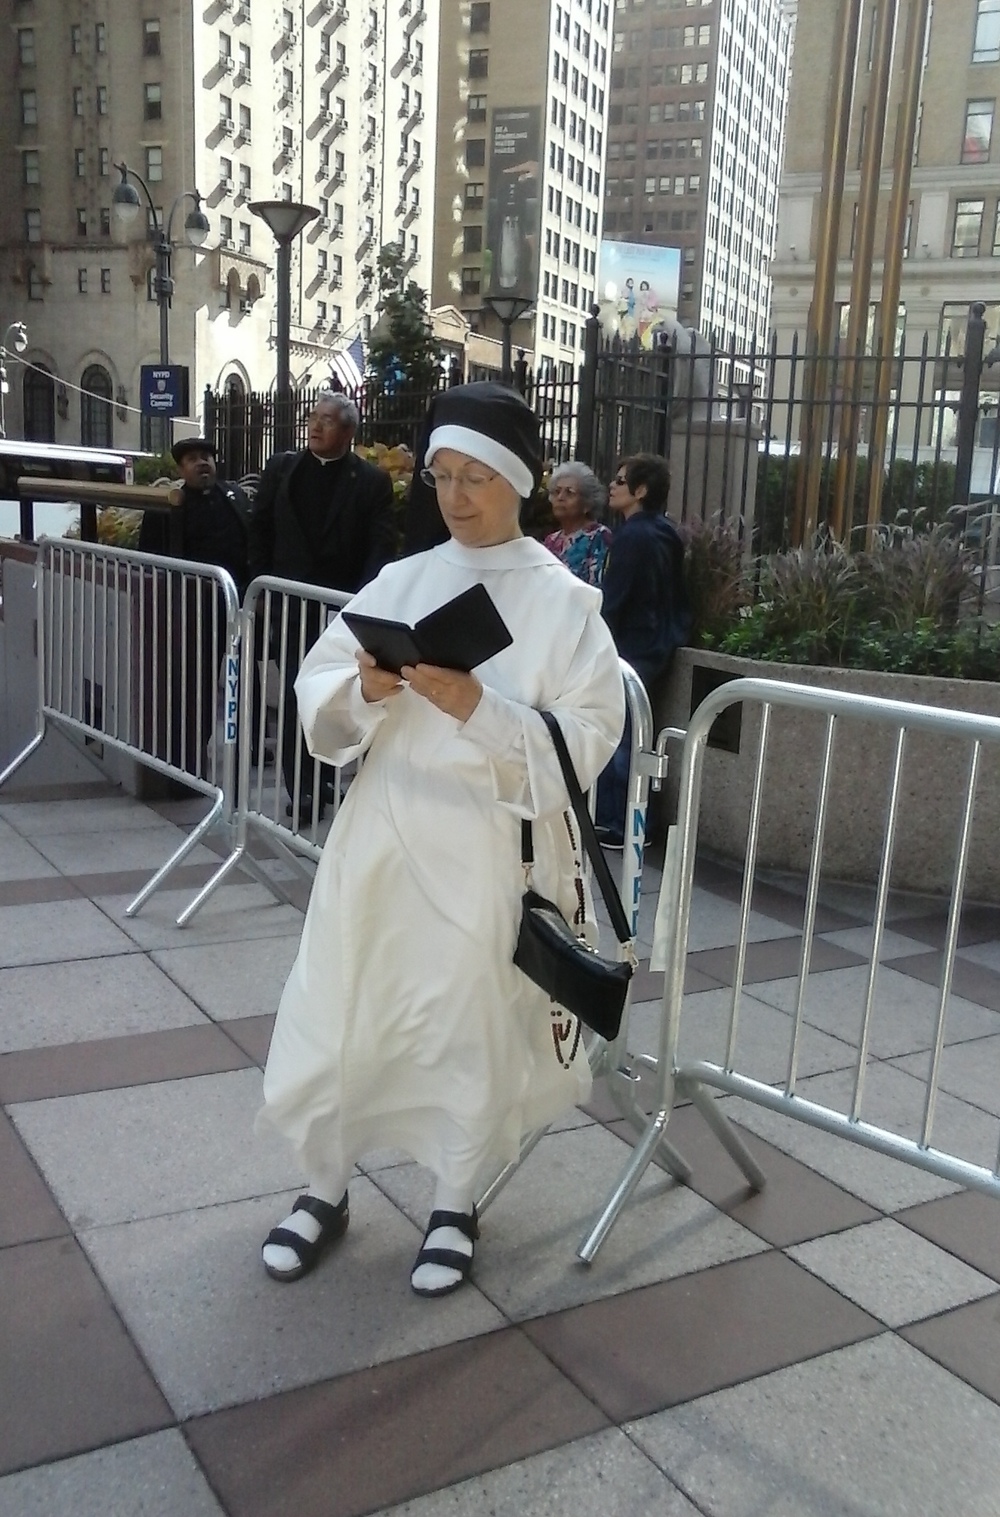 Sr. Denise Marie prays the Divine Office while waiting. Earlier they greeted every Cardinal and Bishop attending who passed them going by the barriers behind Sister!